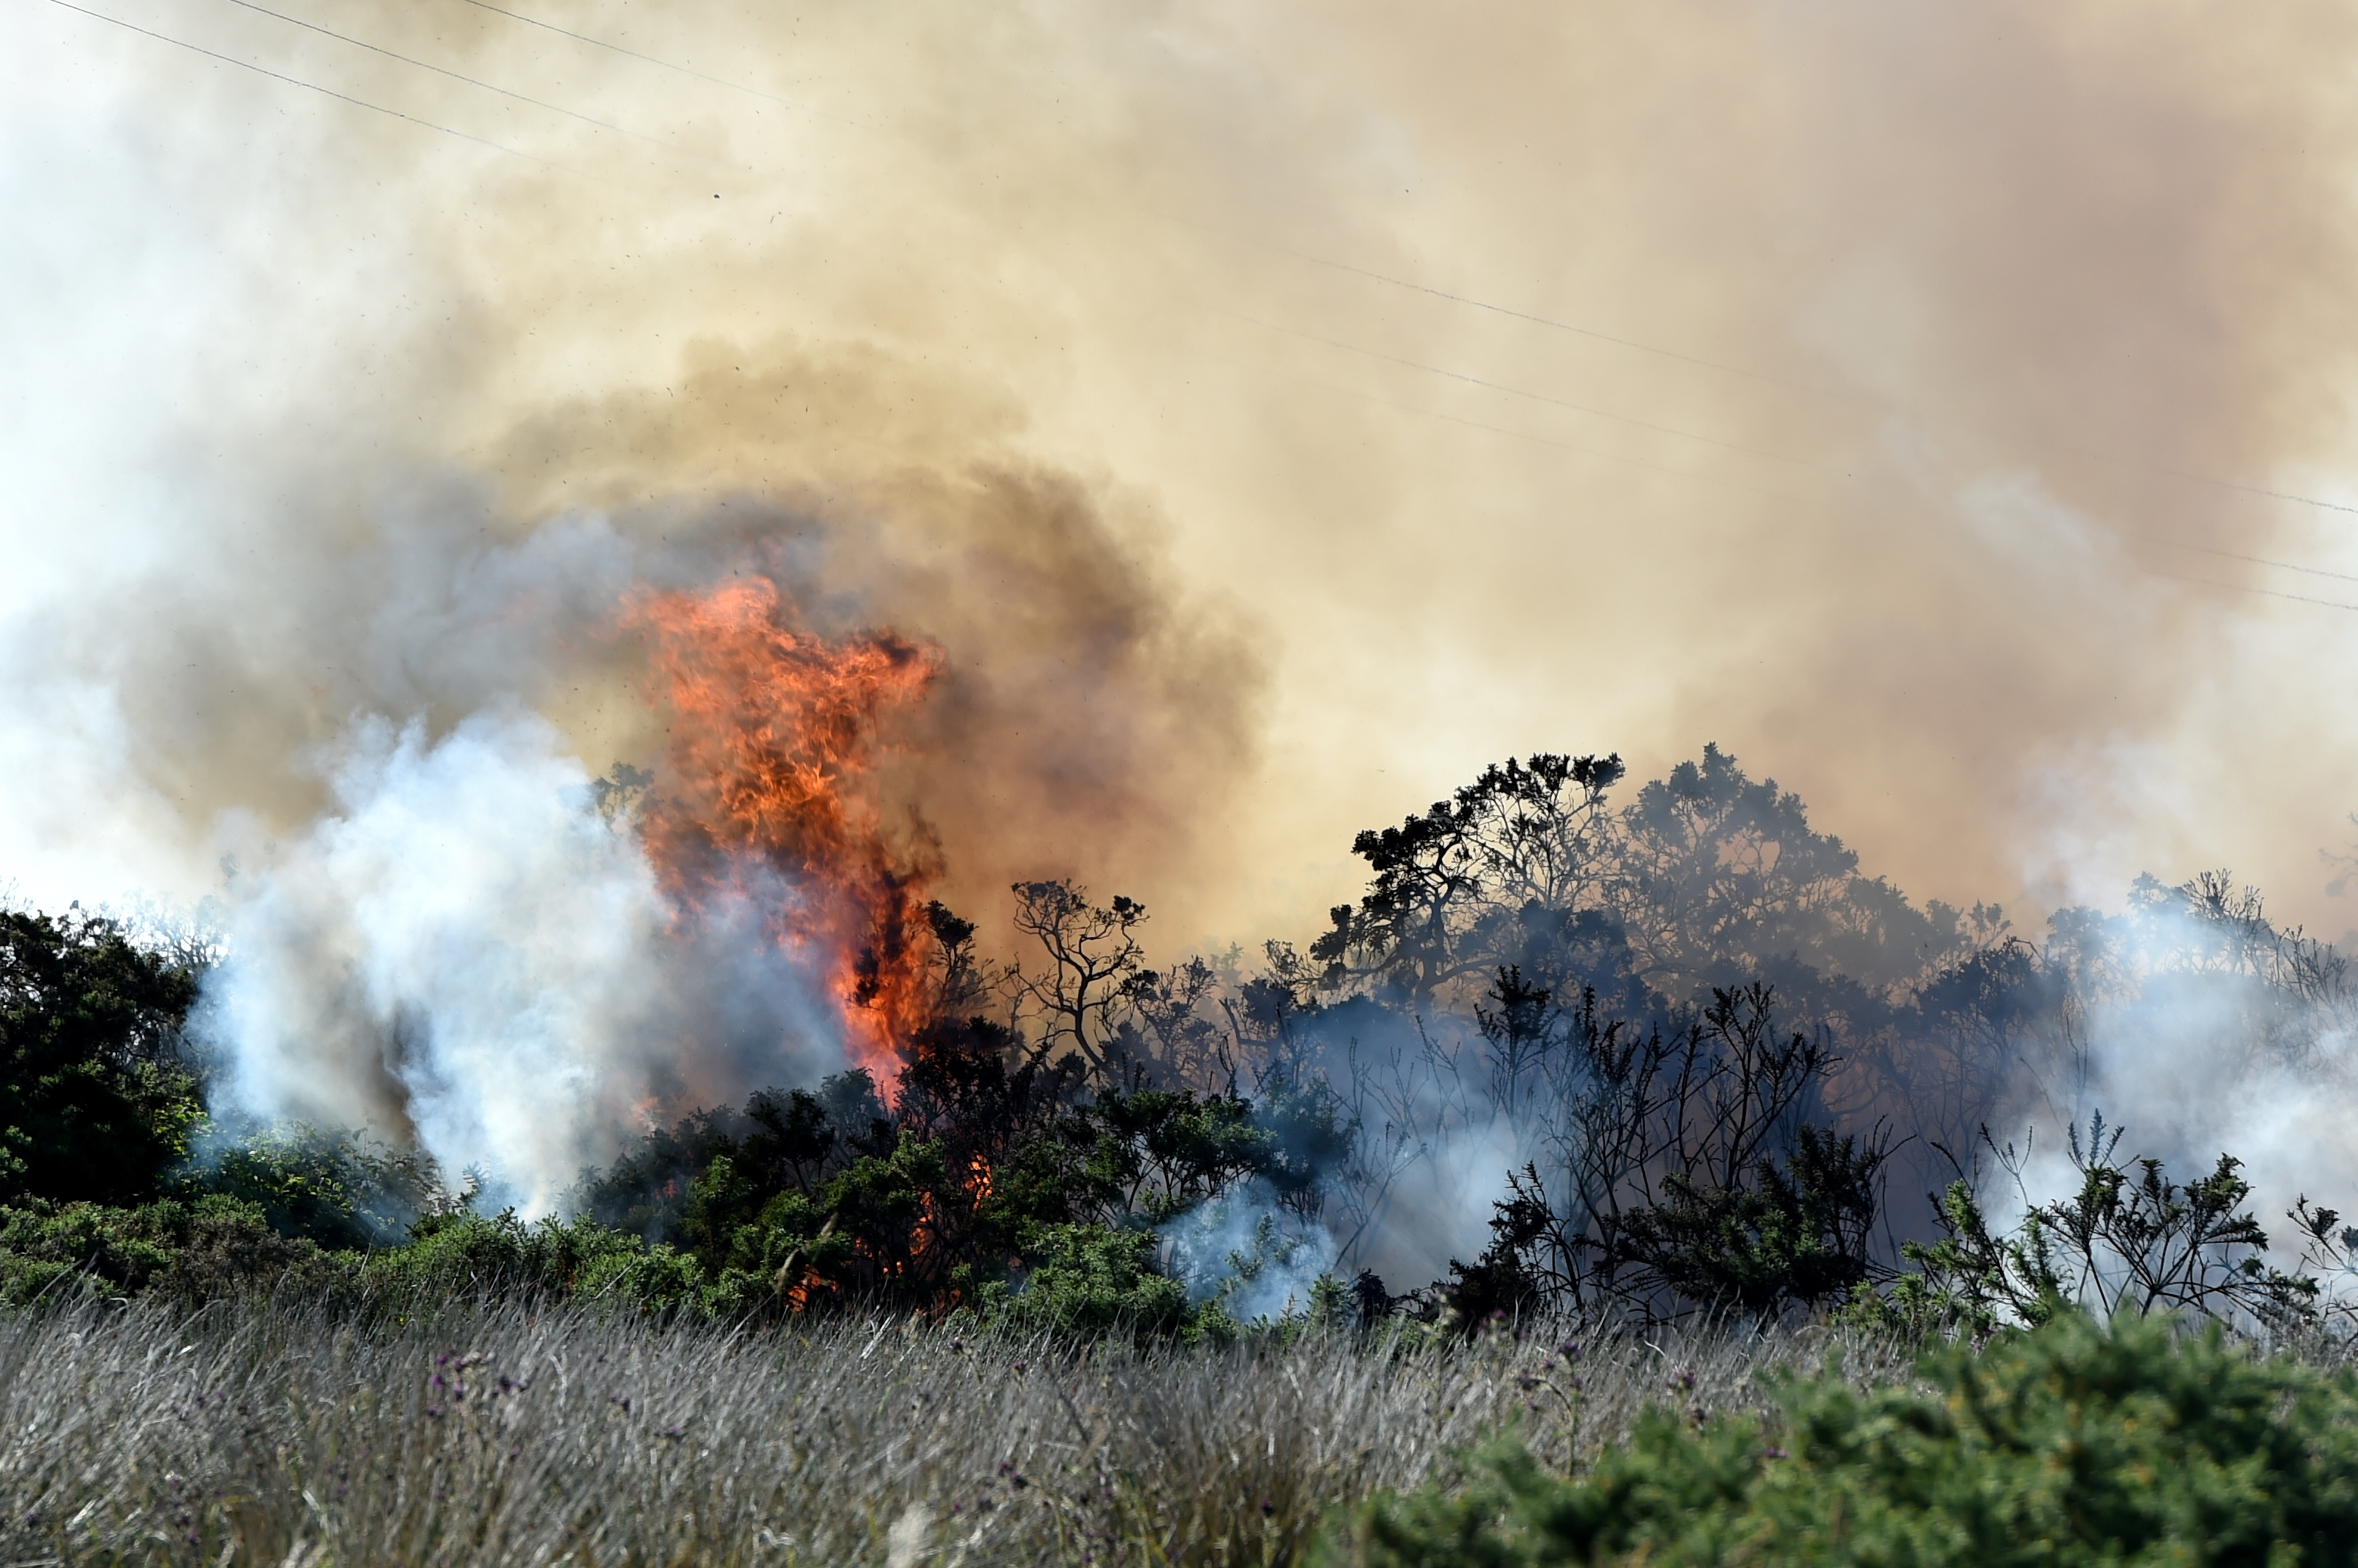 A wildfire on a patch of land between Newhills, Bucksburn and Kingswells.